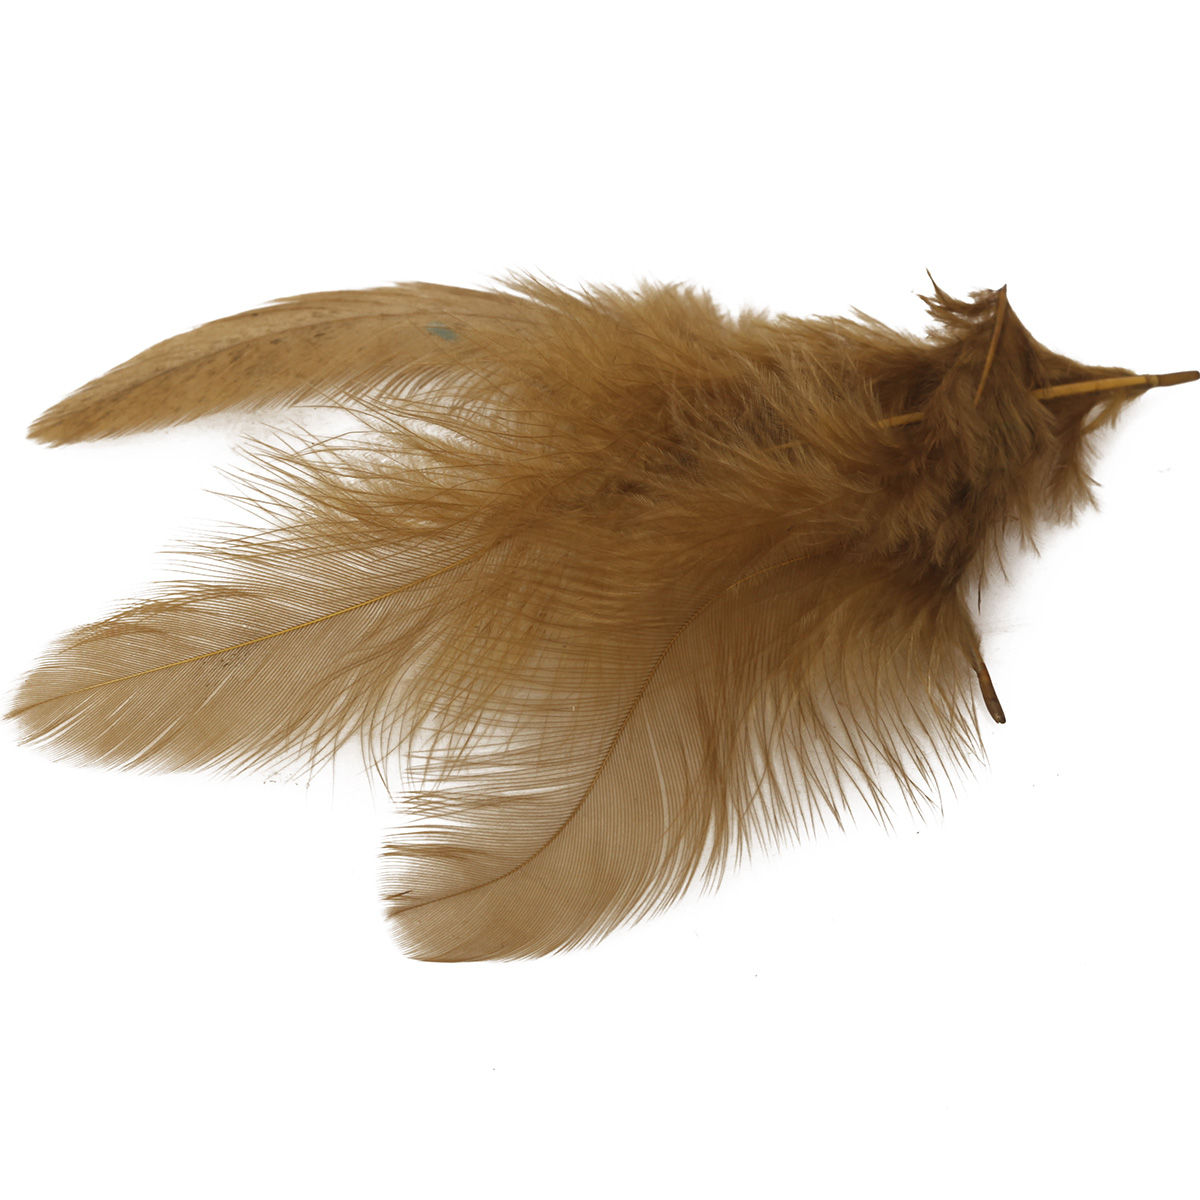 Wapsi white matuka soft hackle fly tying feathers taimen for Fly fishing feathers